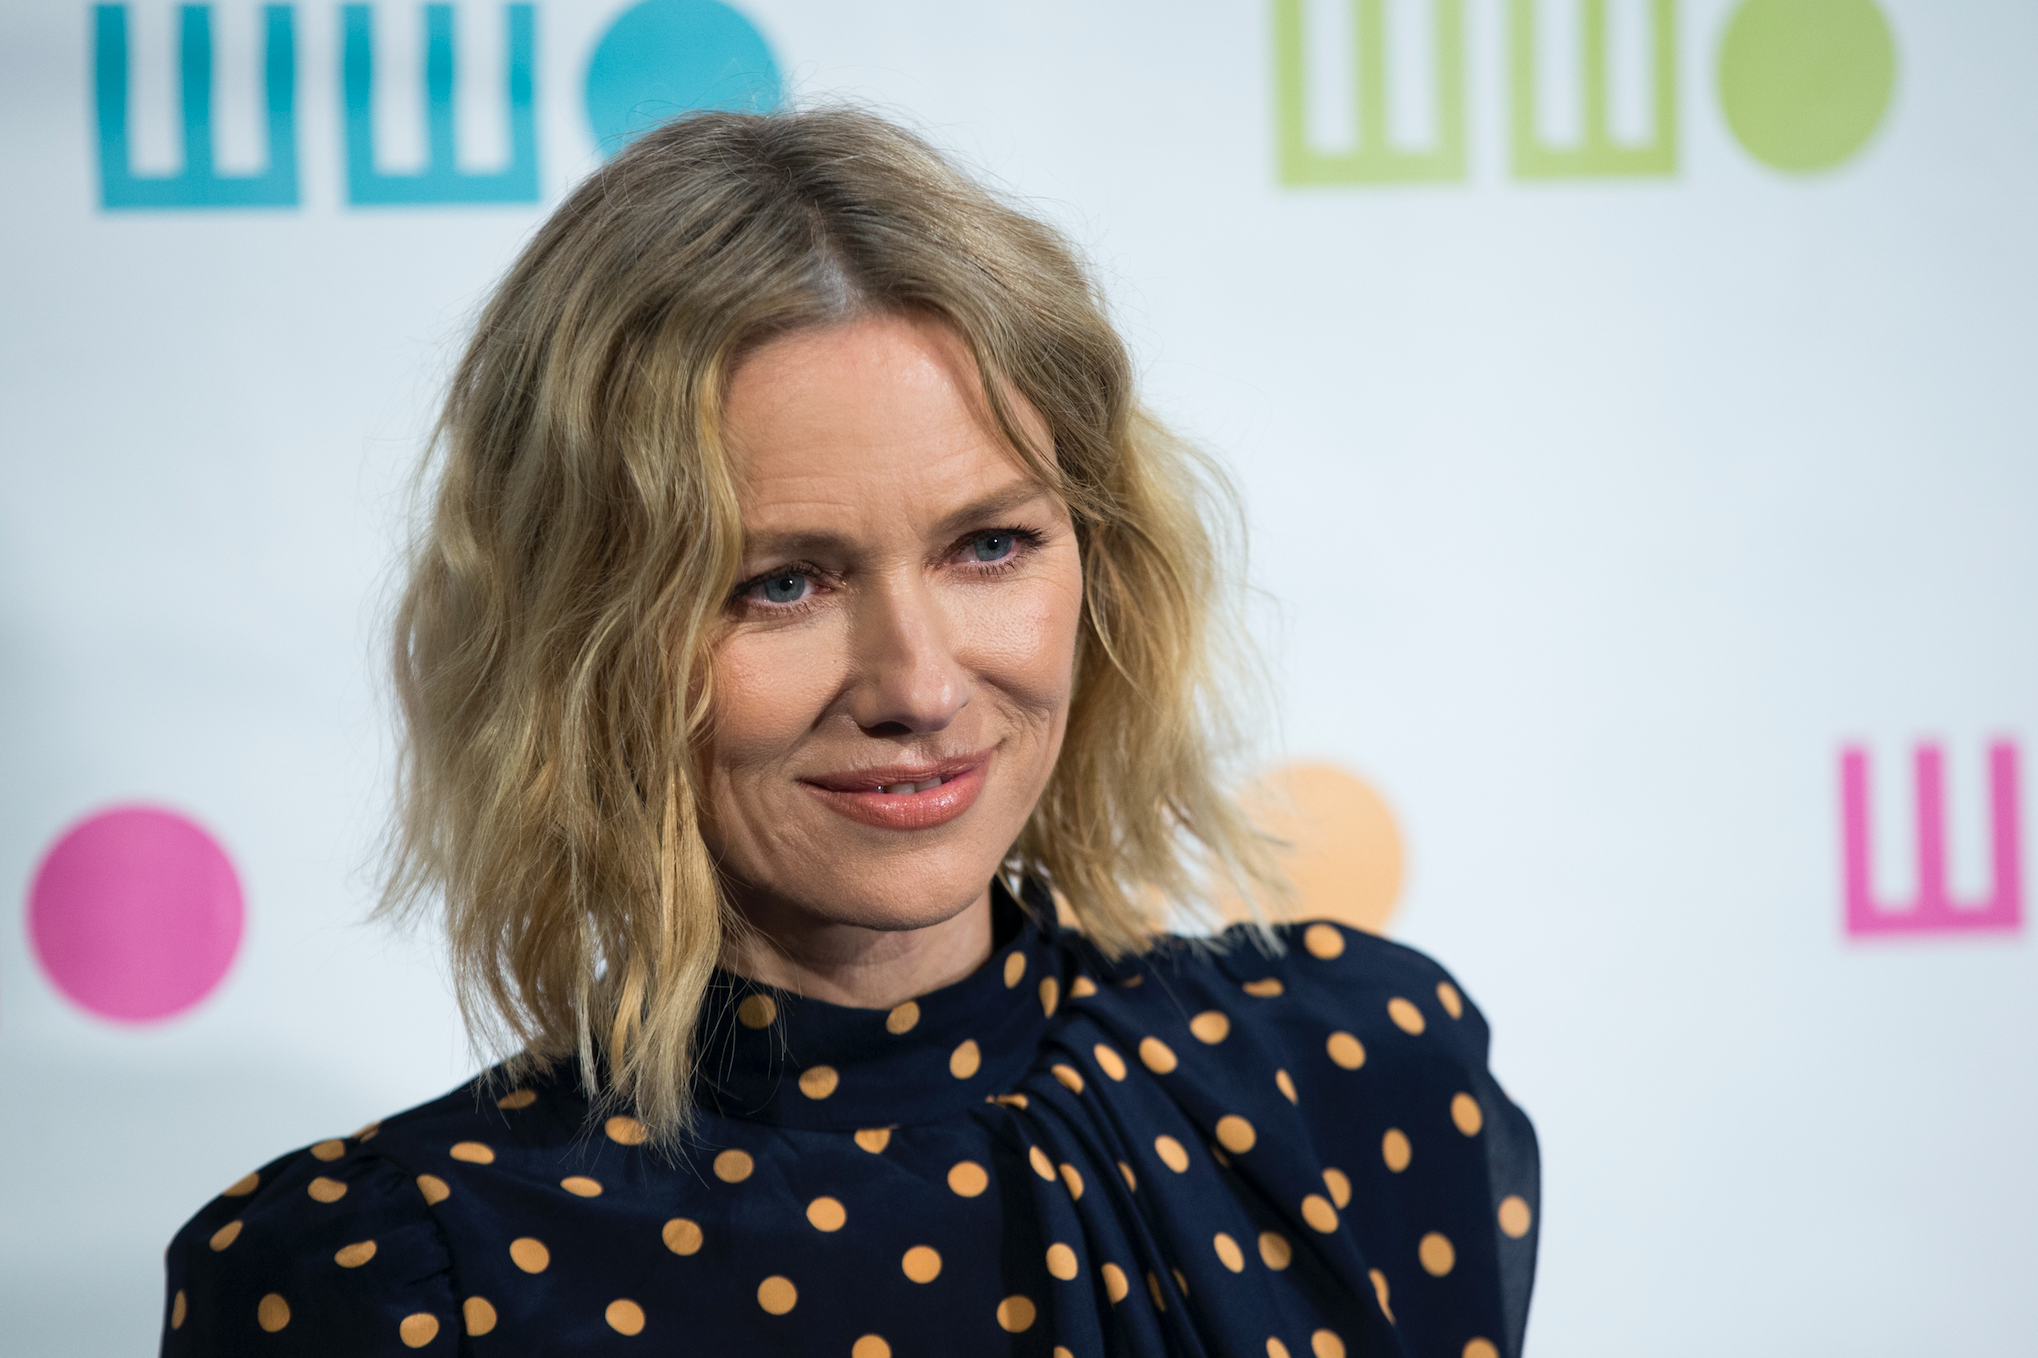 Naomi Watts is the big name on the list of actors for the Game of Thrones prequel. Credit: PA